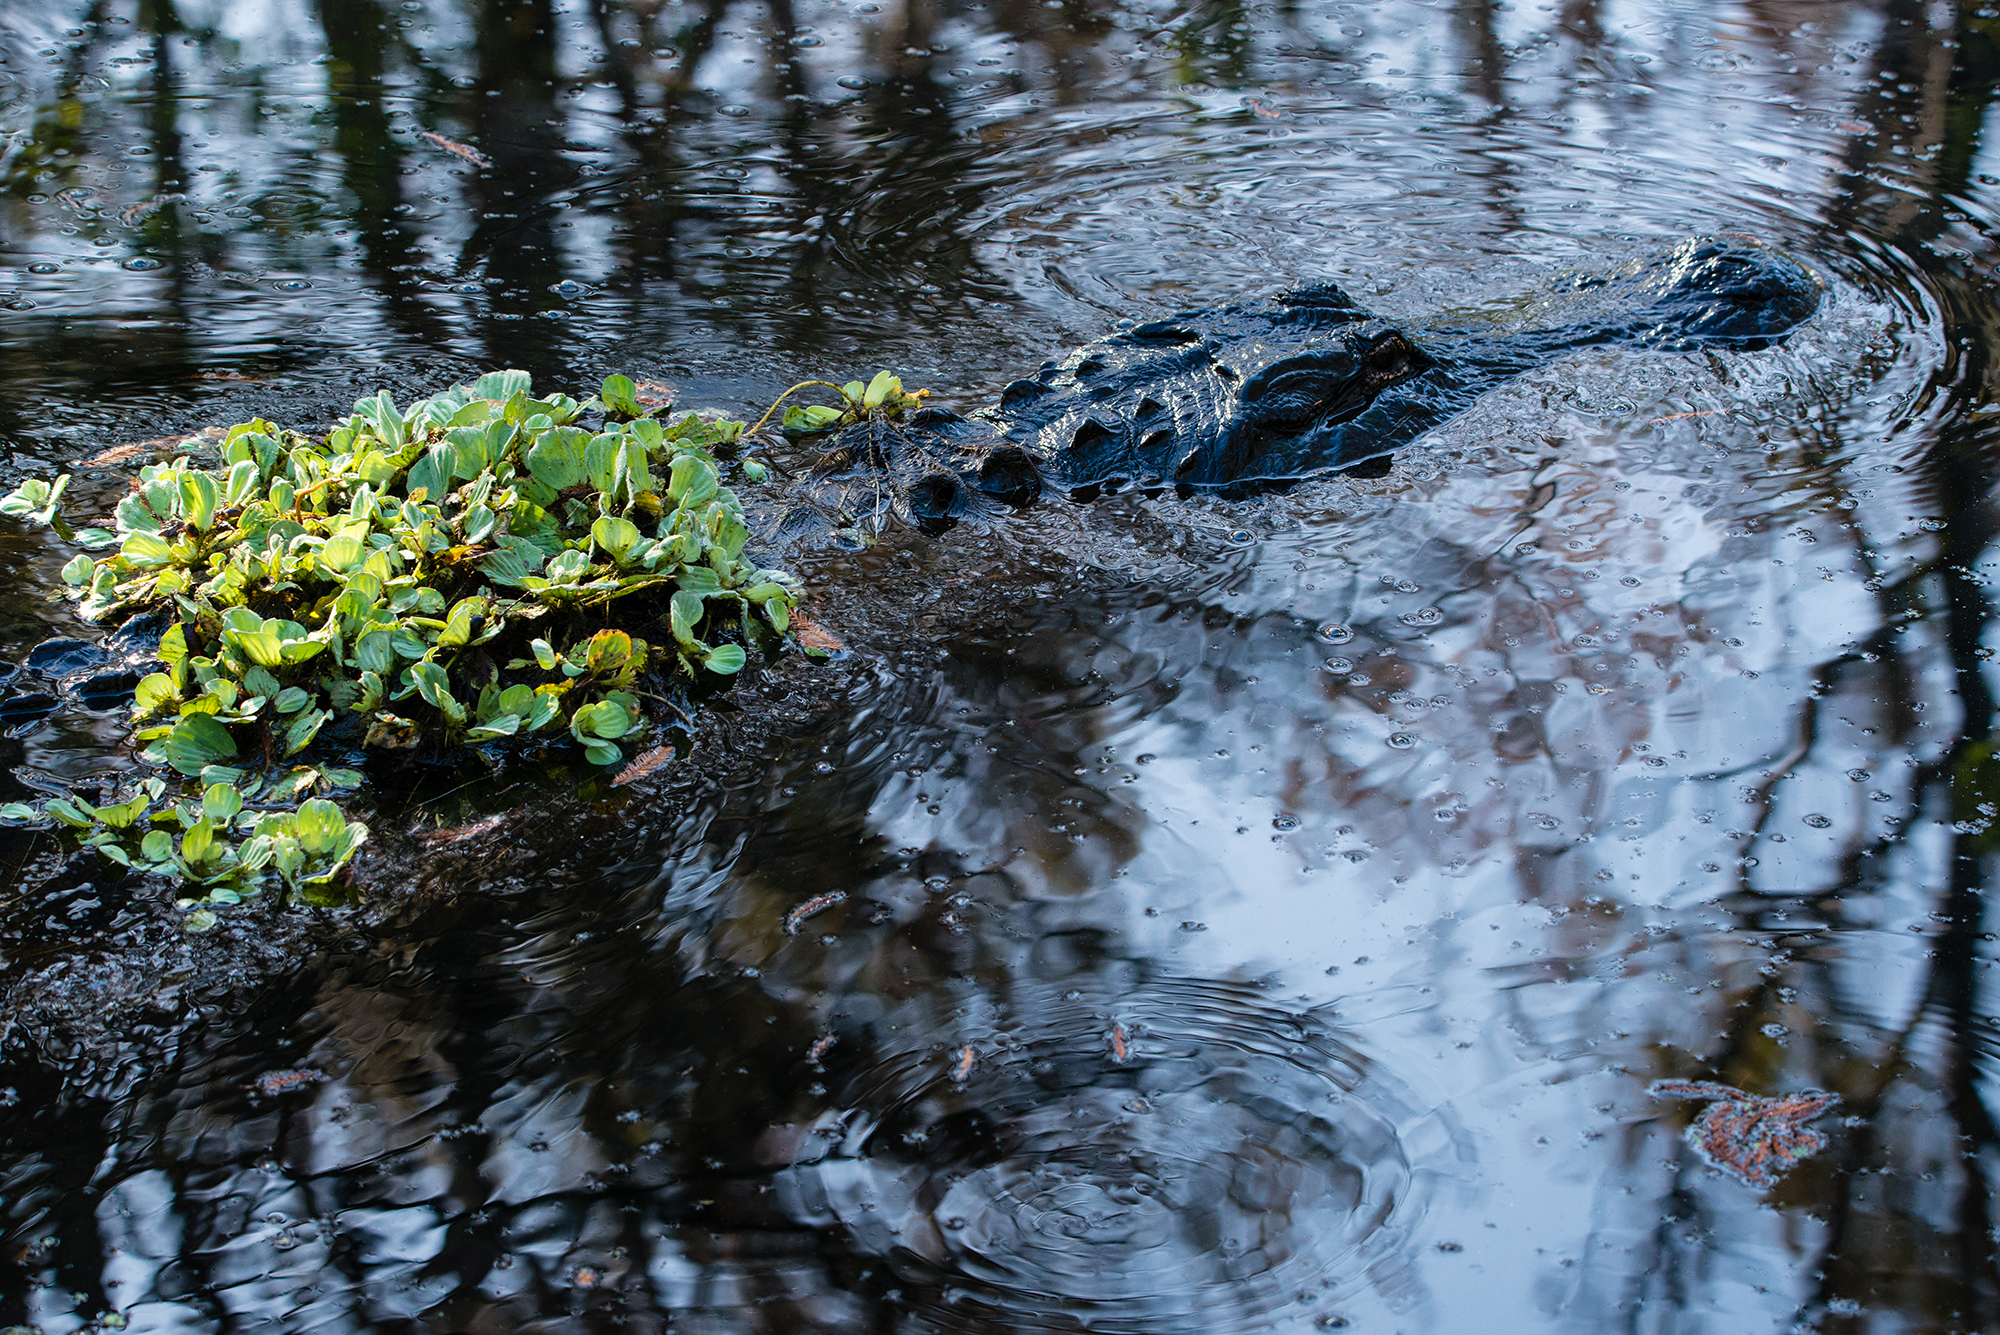 #alligator, #corkscrew, #swamp, #water, #predator, #florida, #southwestflorida, #wildlfie, #camouflage